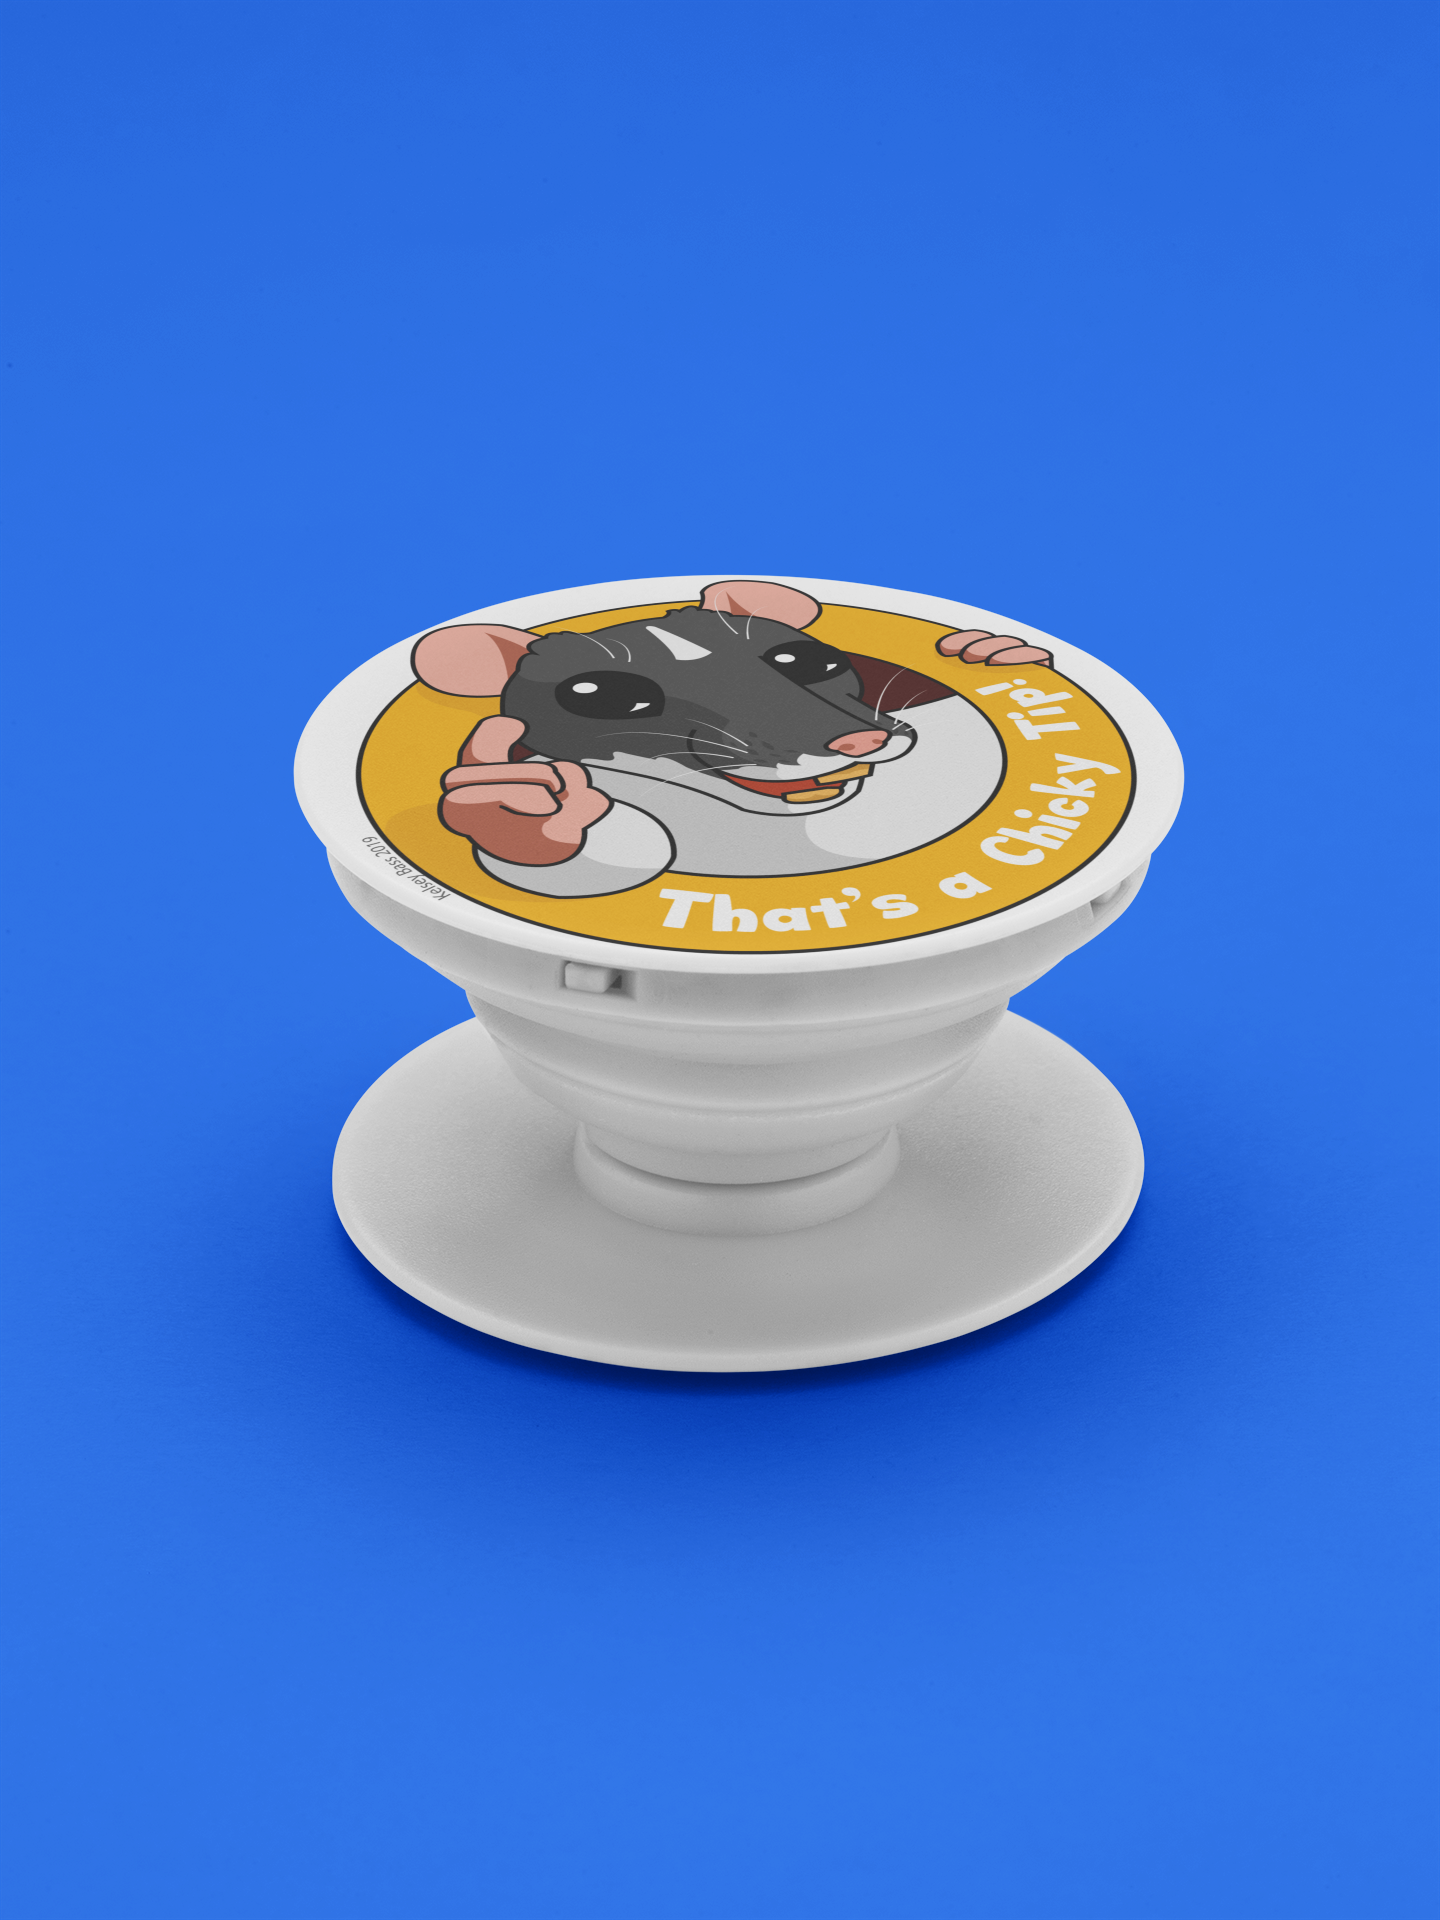 popsocket-grip-mockup-standing-on-a-flat-surface-22052.png